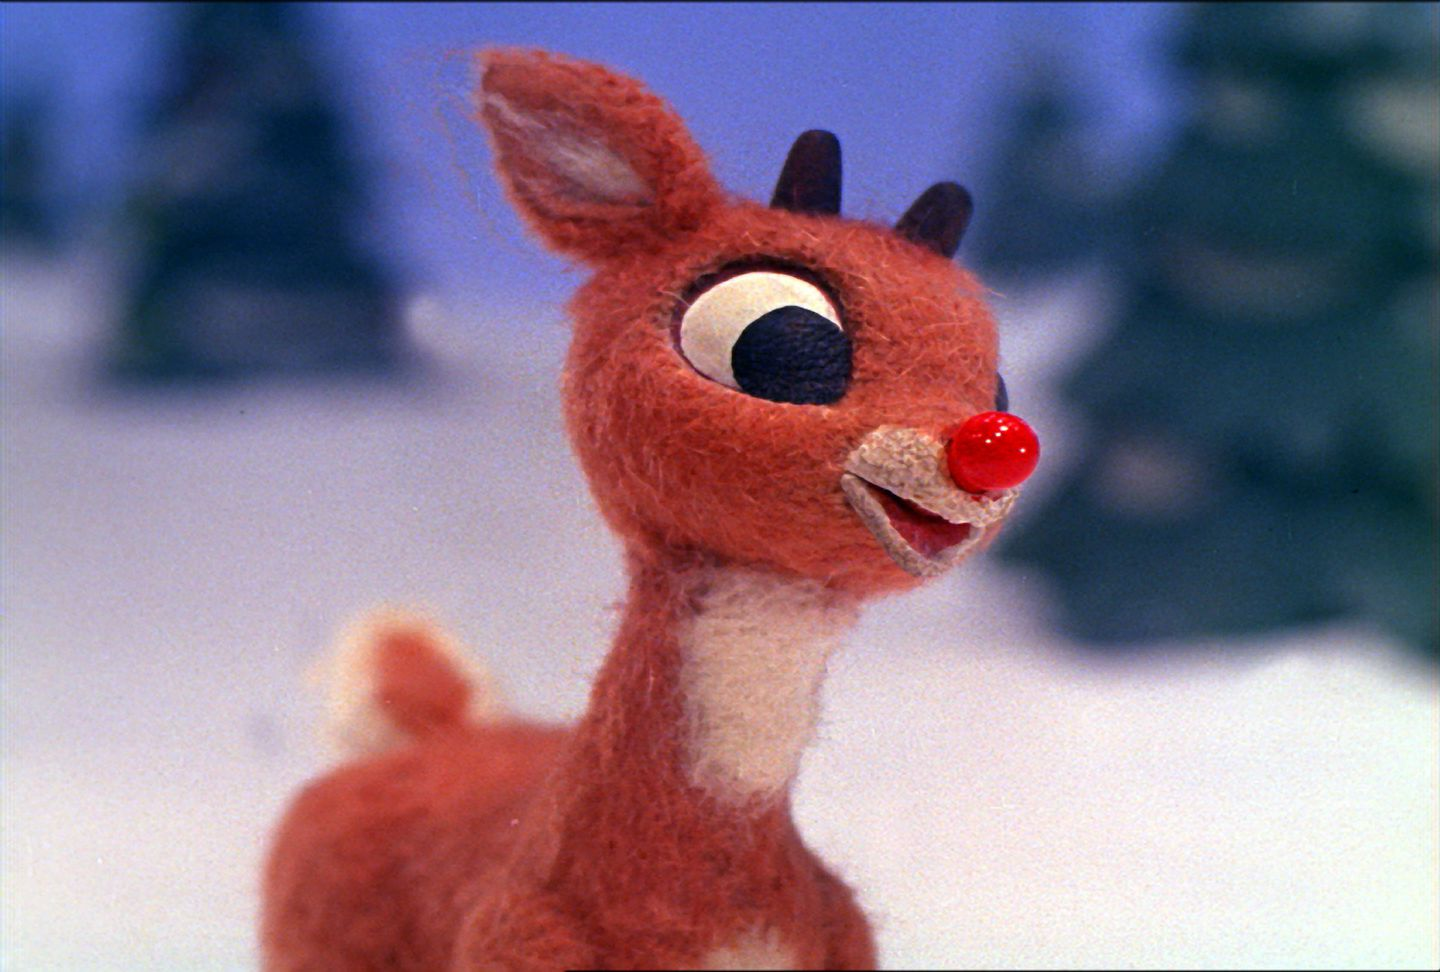 Some people are upset about 'Rudolph the Red-Nosed Reindeer.' Here's why -  The Boston Globe